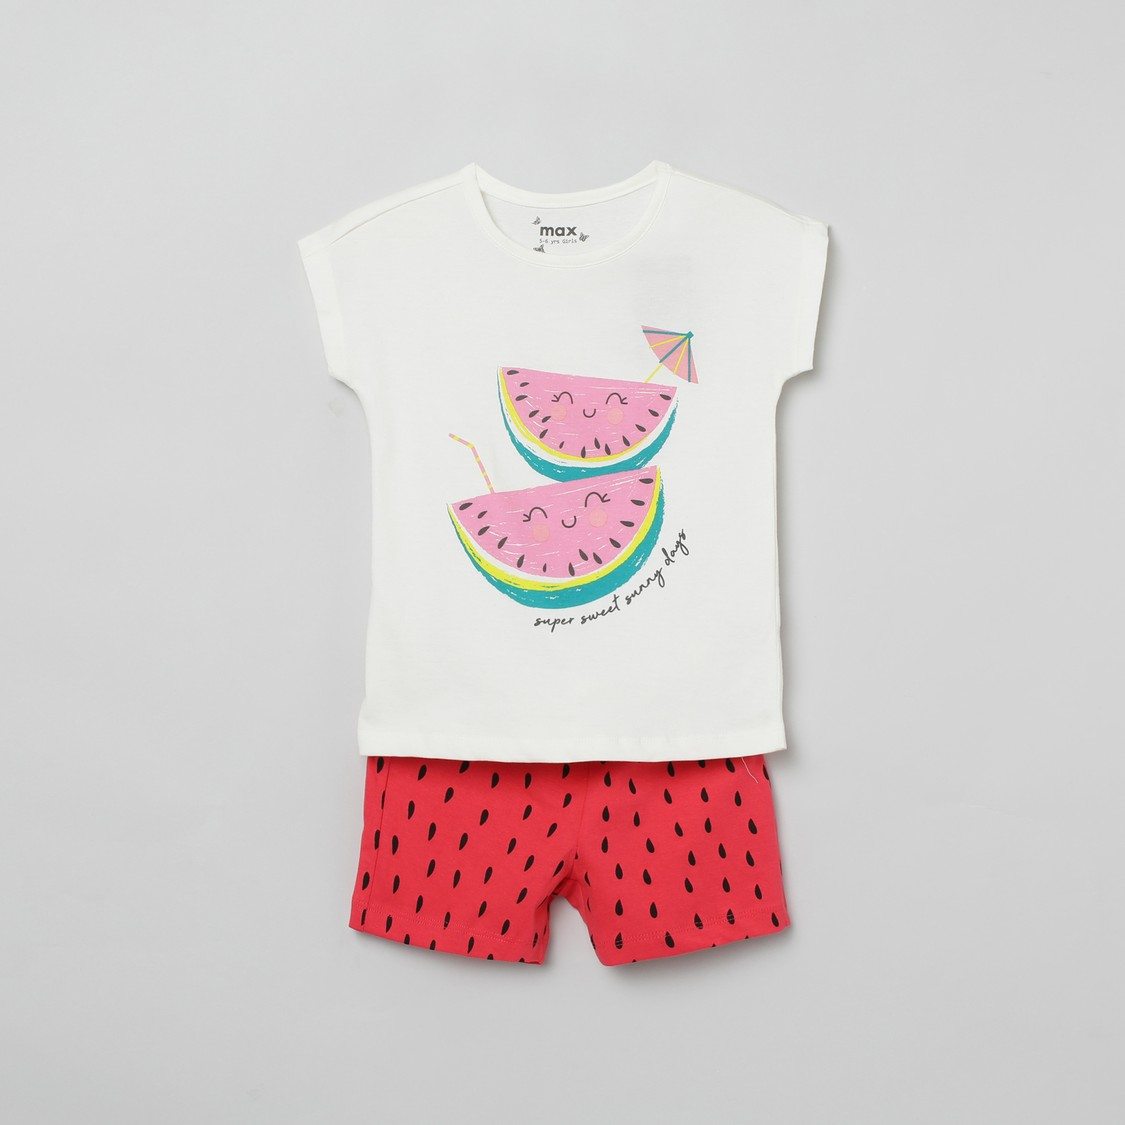 MAX Printed Round Neck T-shirt with Elastiacted Shorts